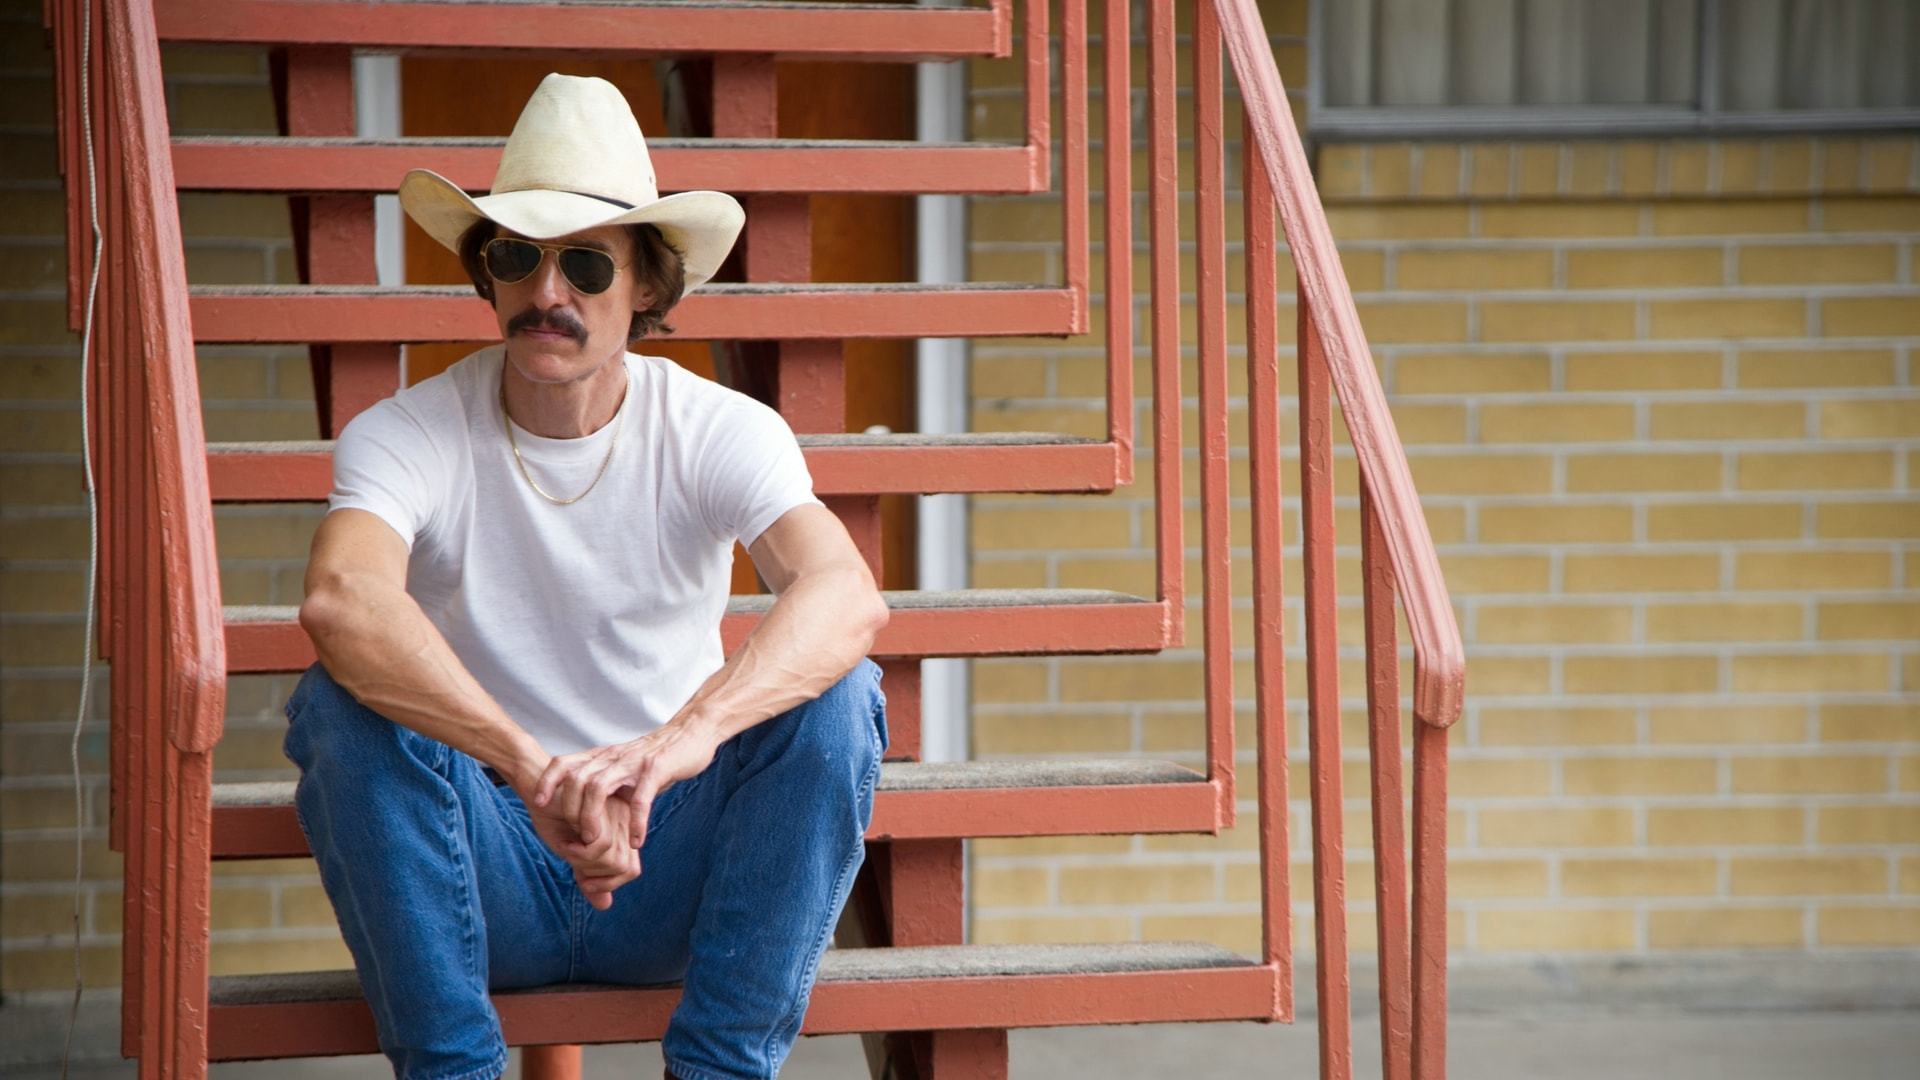 Dallas Buyers Club for mobile